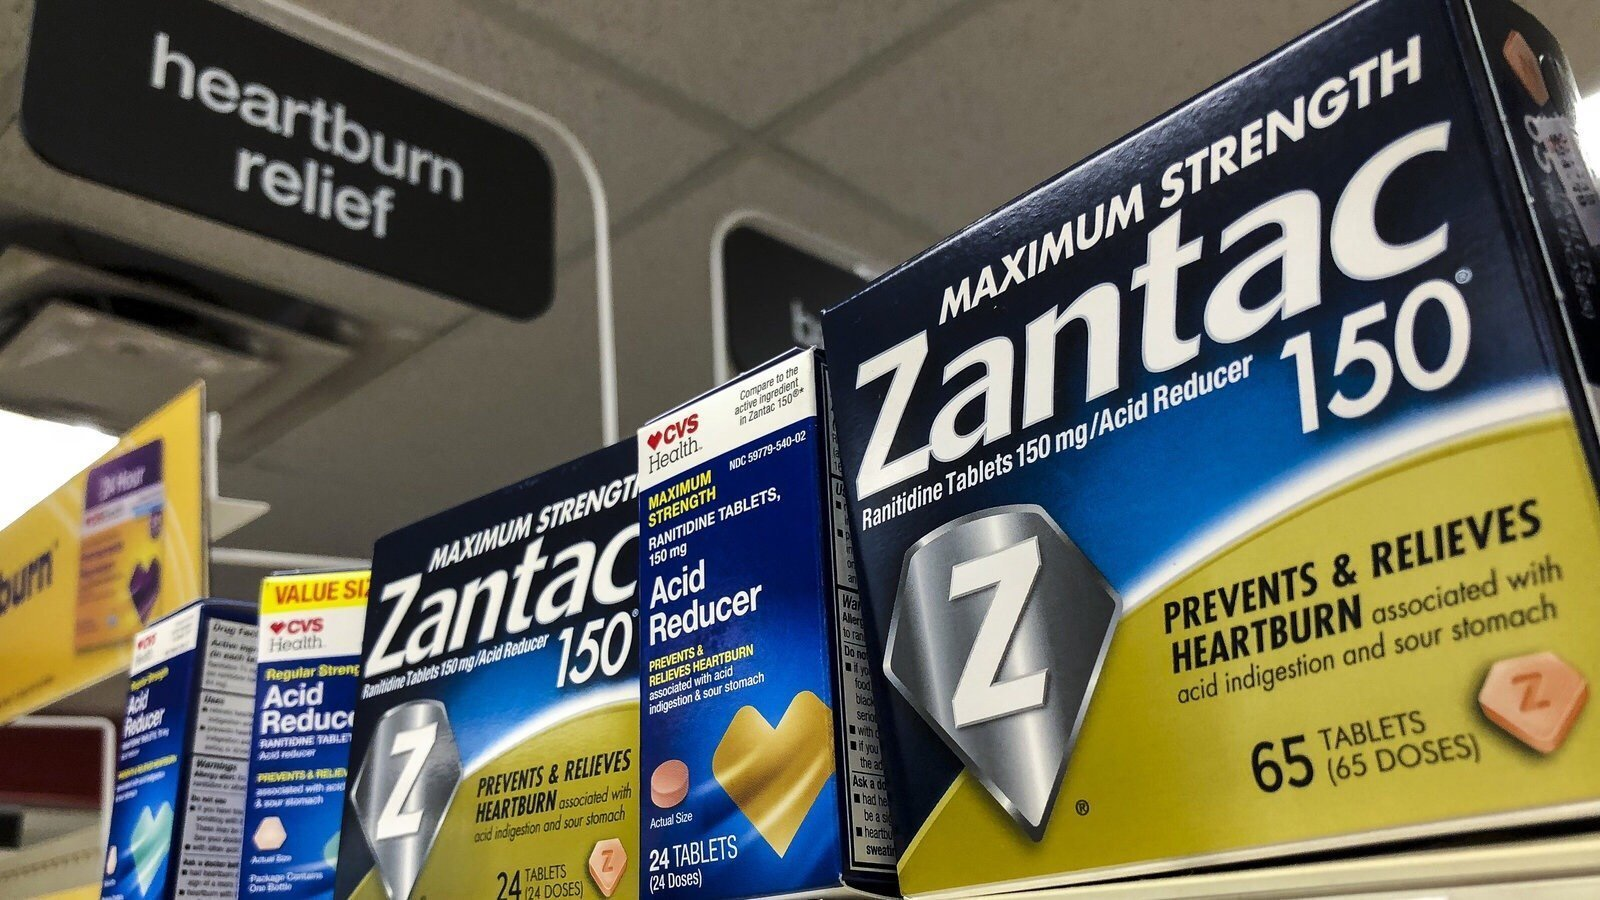 Zantac on shelves